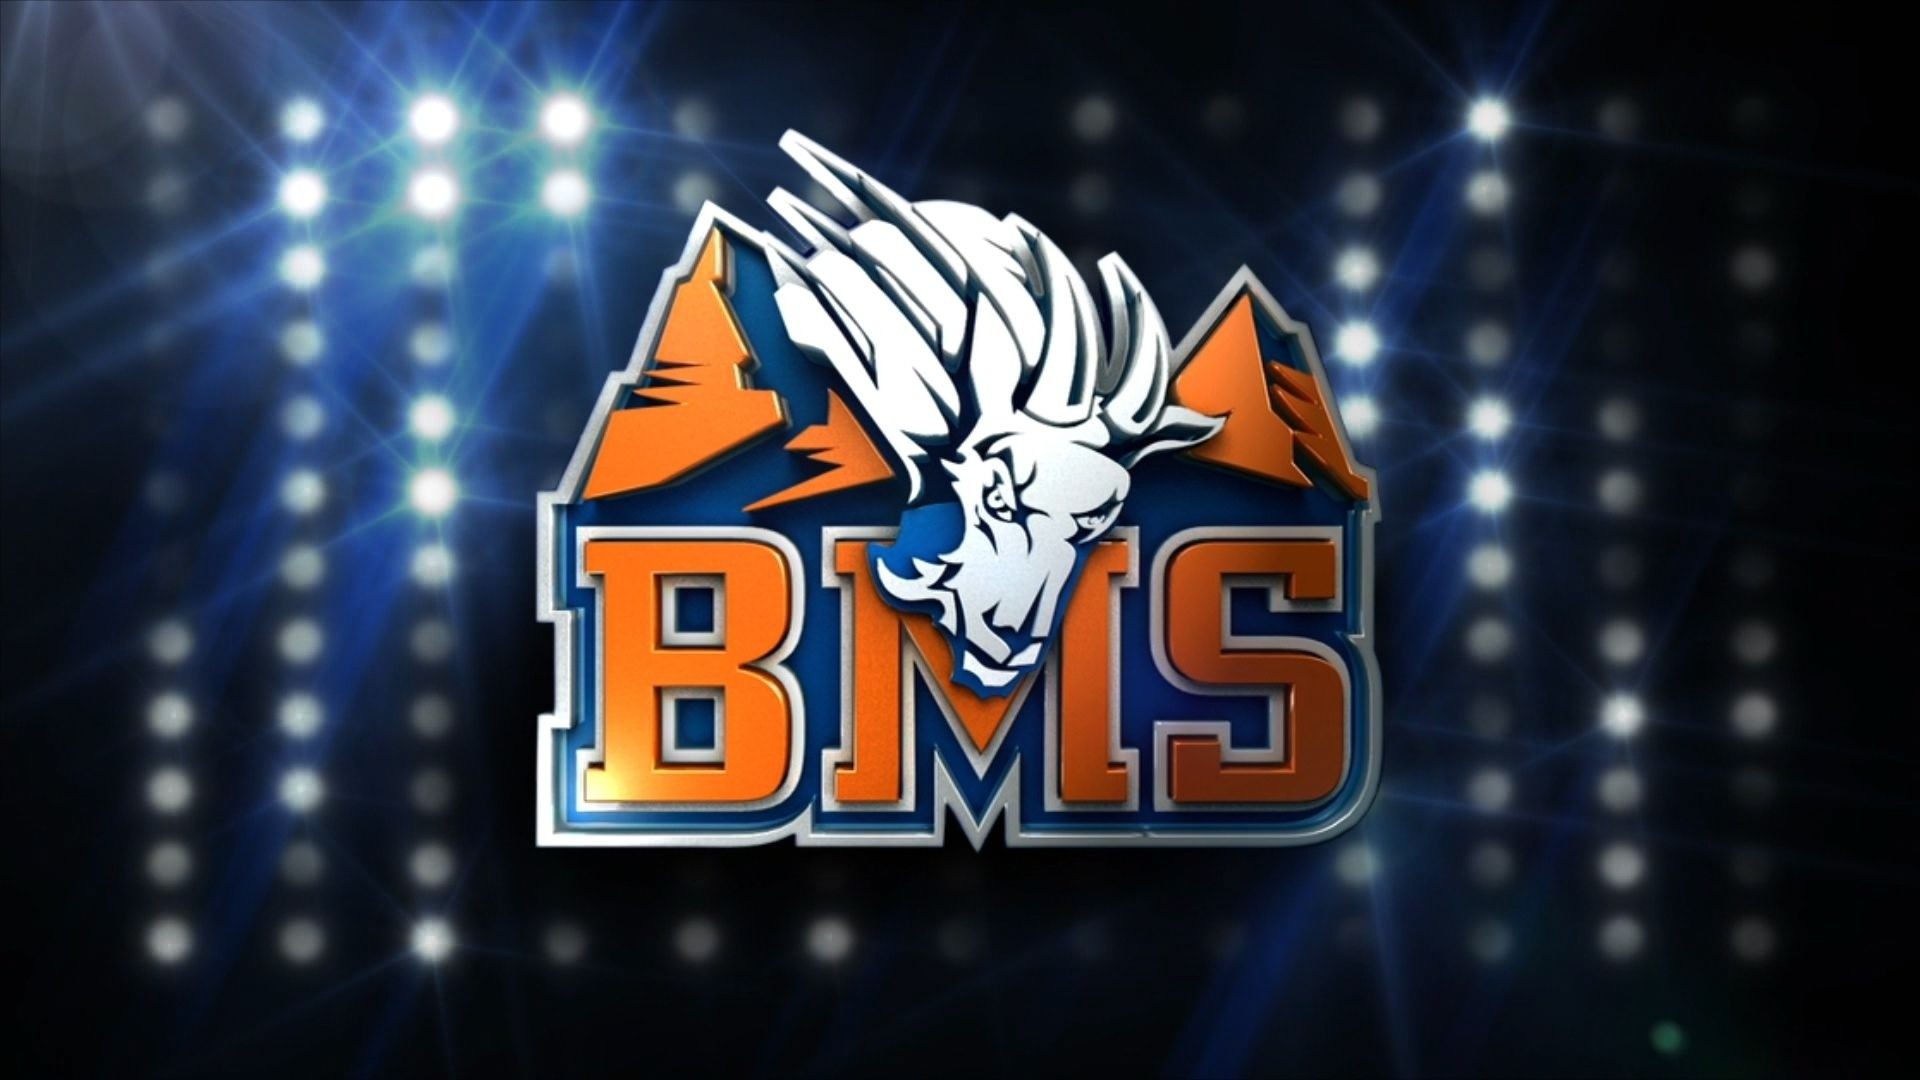 Blue Mountain State Wallpaper Hd 42 Pictures